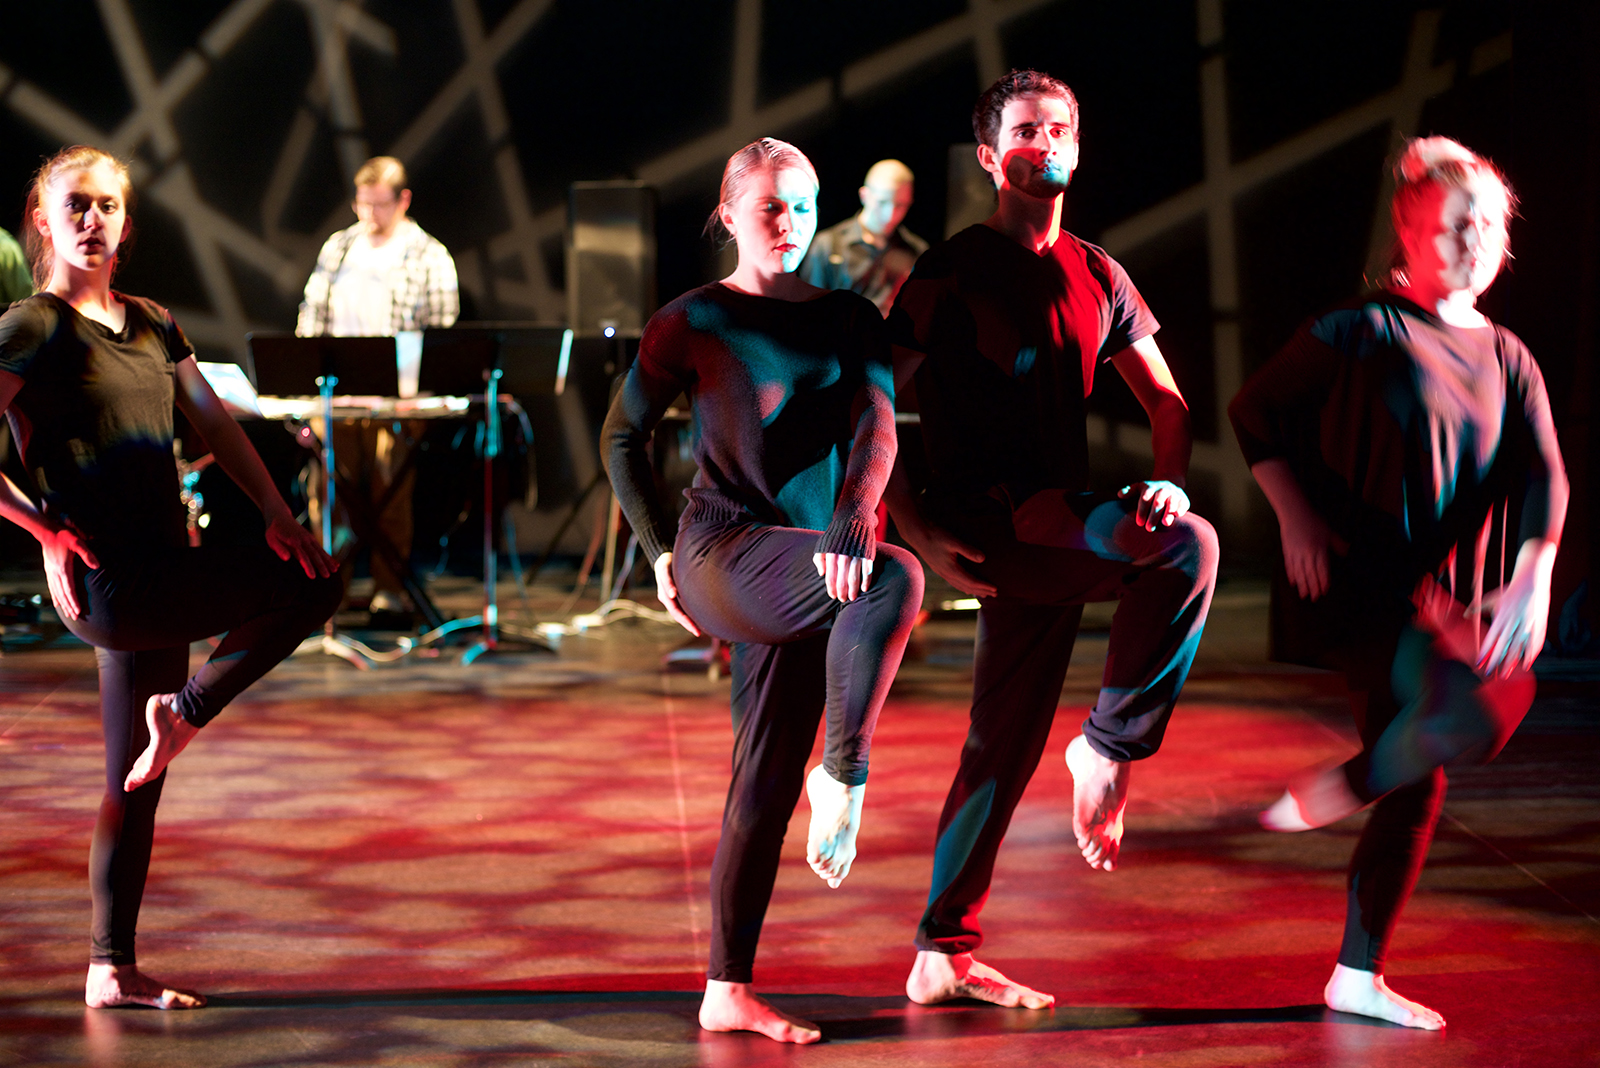 The UNL Dance Program presents Evenings of Dance April 20-23 in the Lied Center's Johnny Carson Theater.